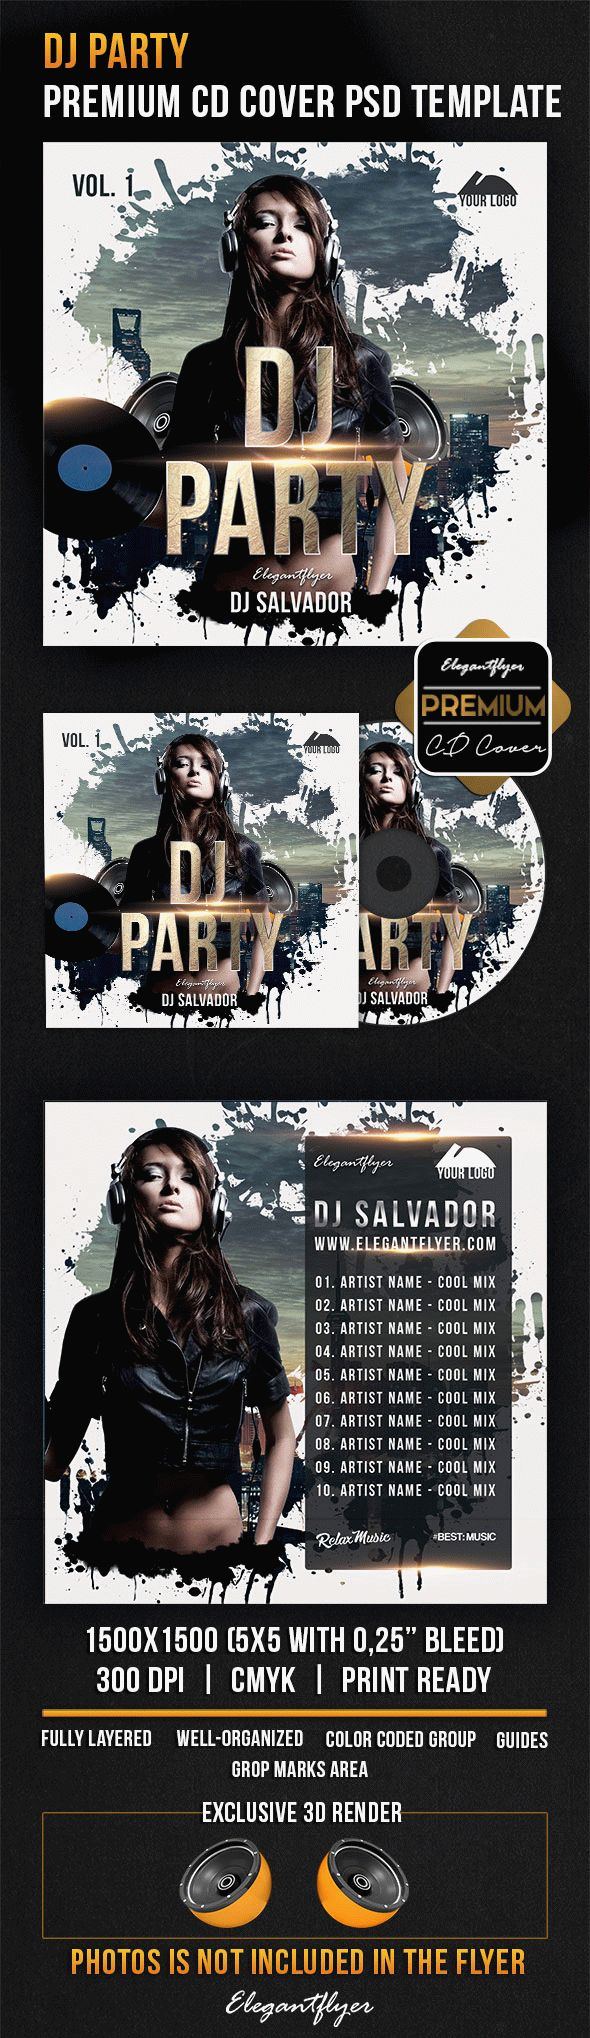 DJ Party – Premium CD Cover PSD Template